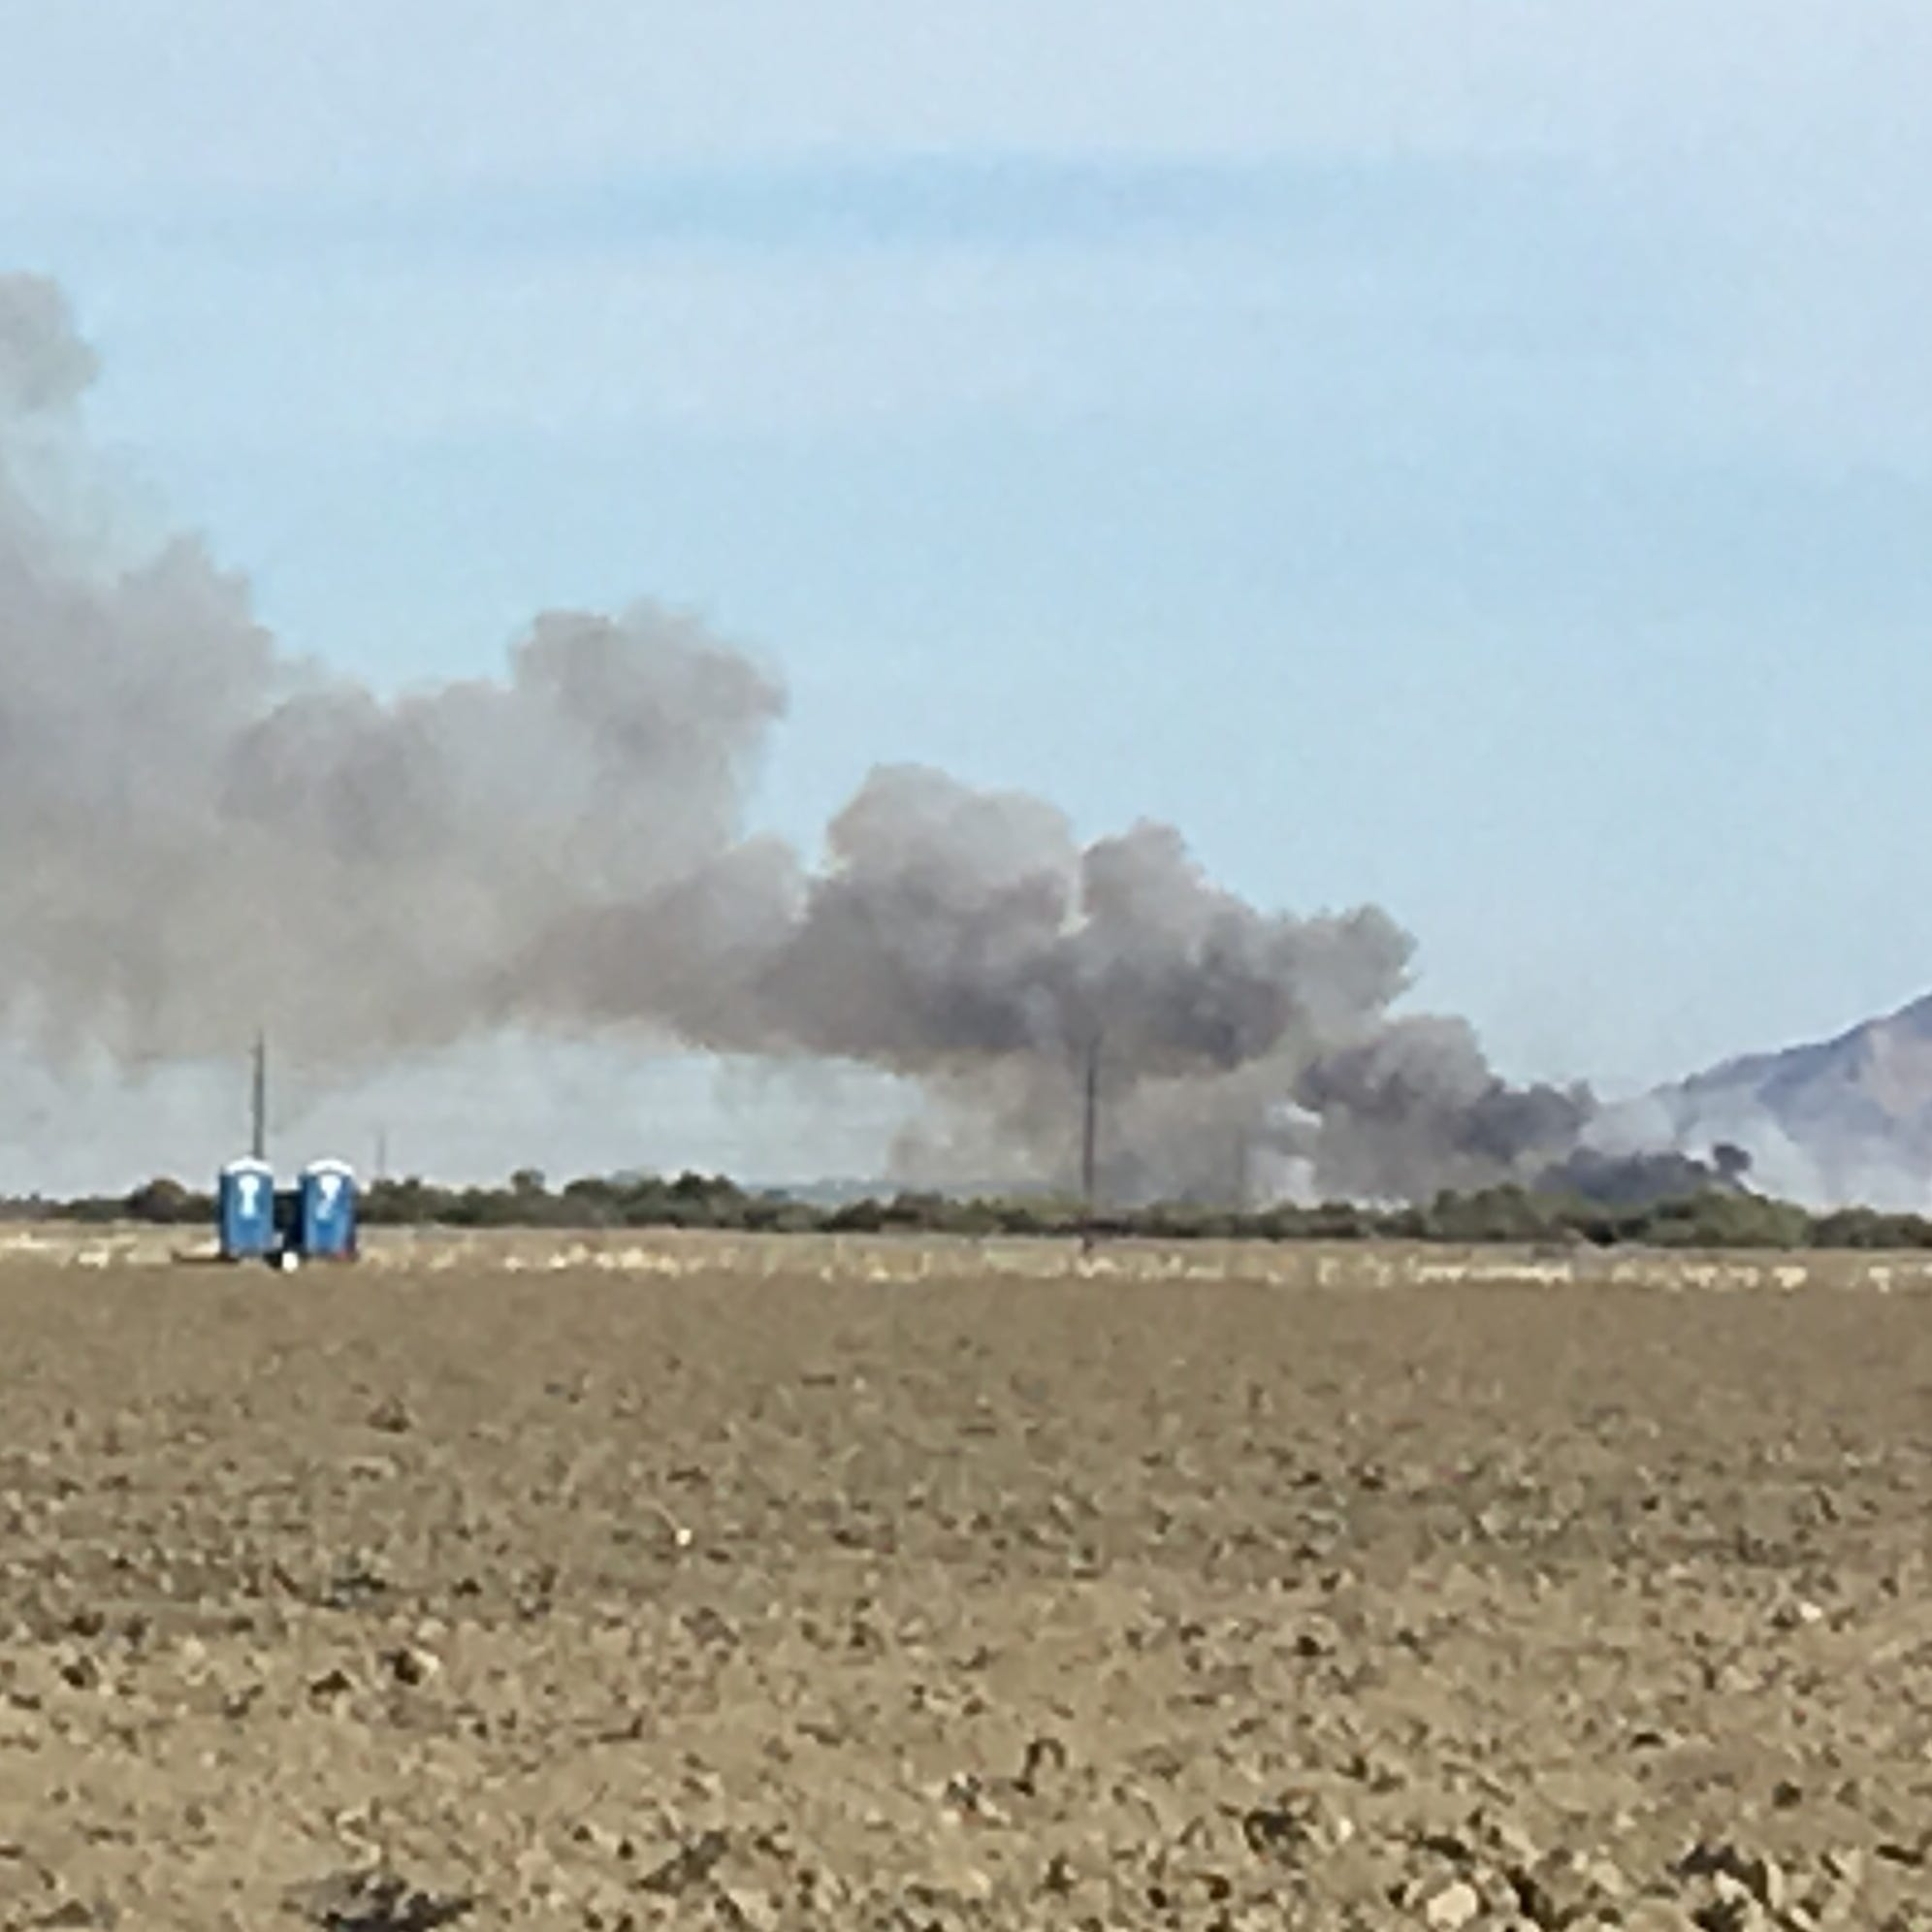 Second Thermal fire, on tribal land, fully contained. Crews will remain to prevent flare-up